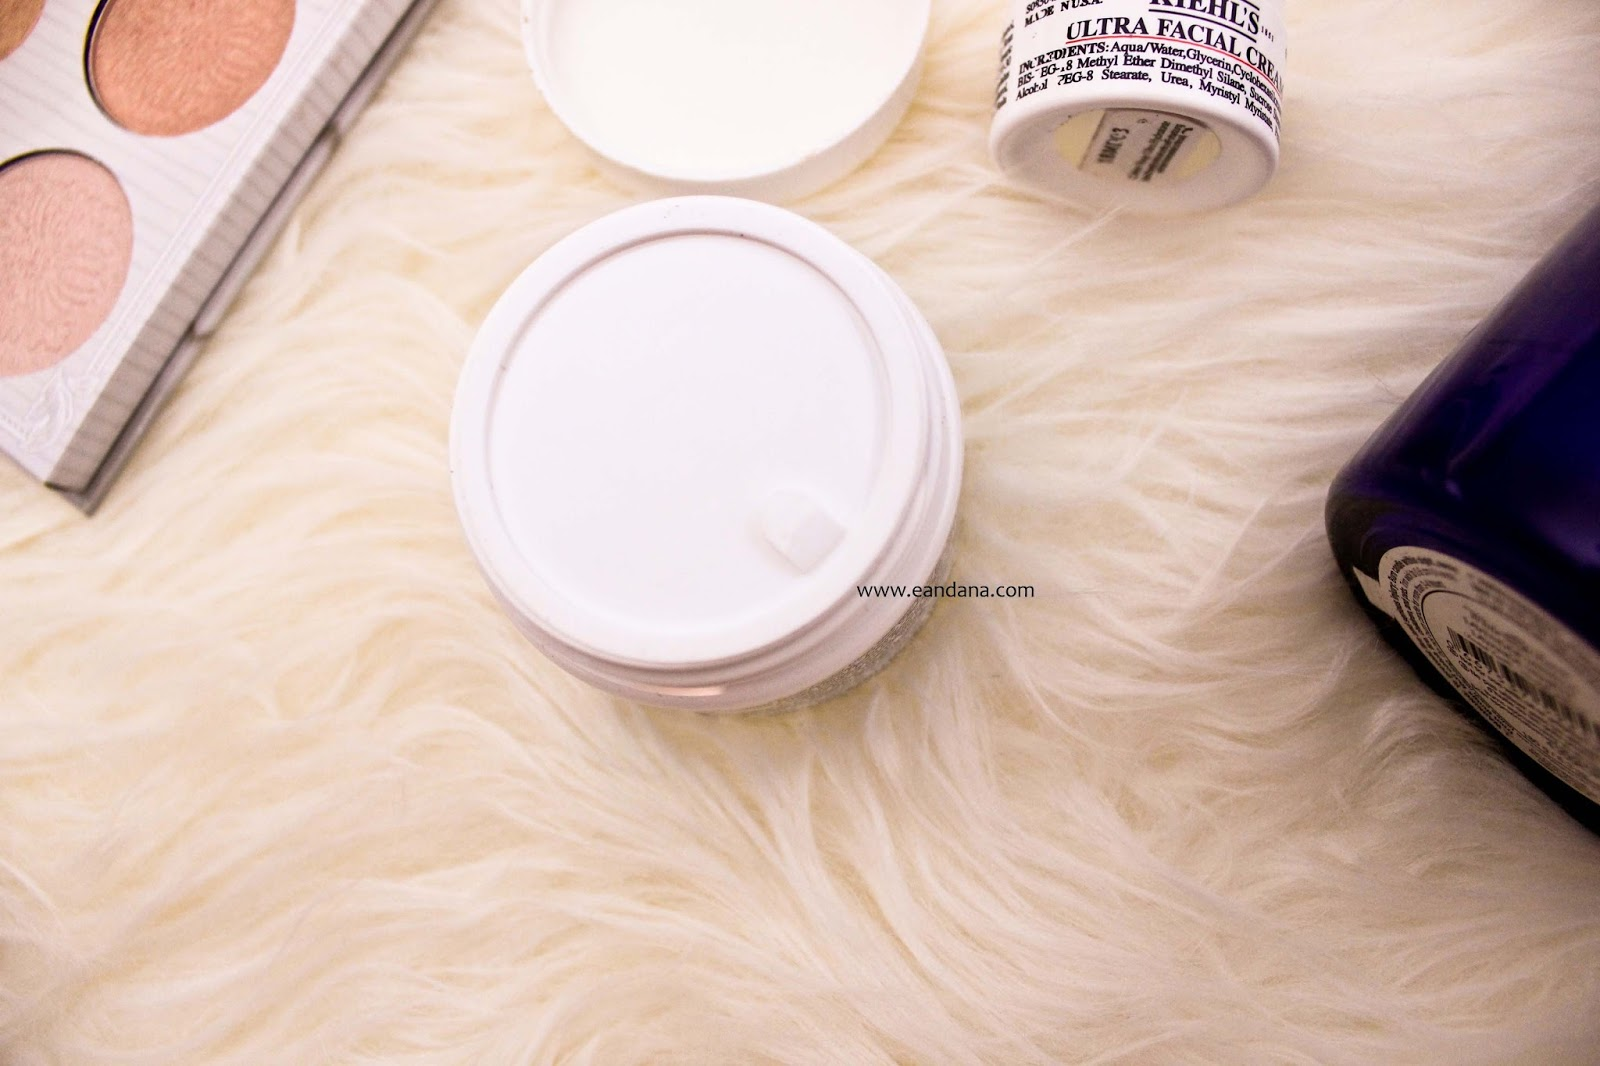 kiehls ultra facial cream lid